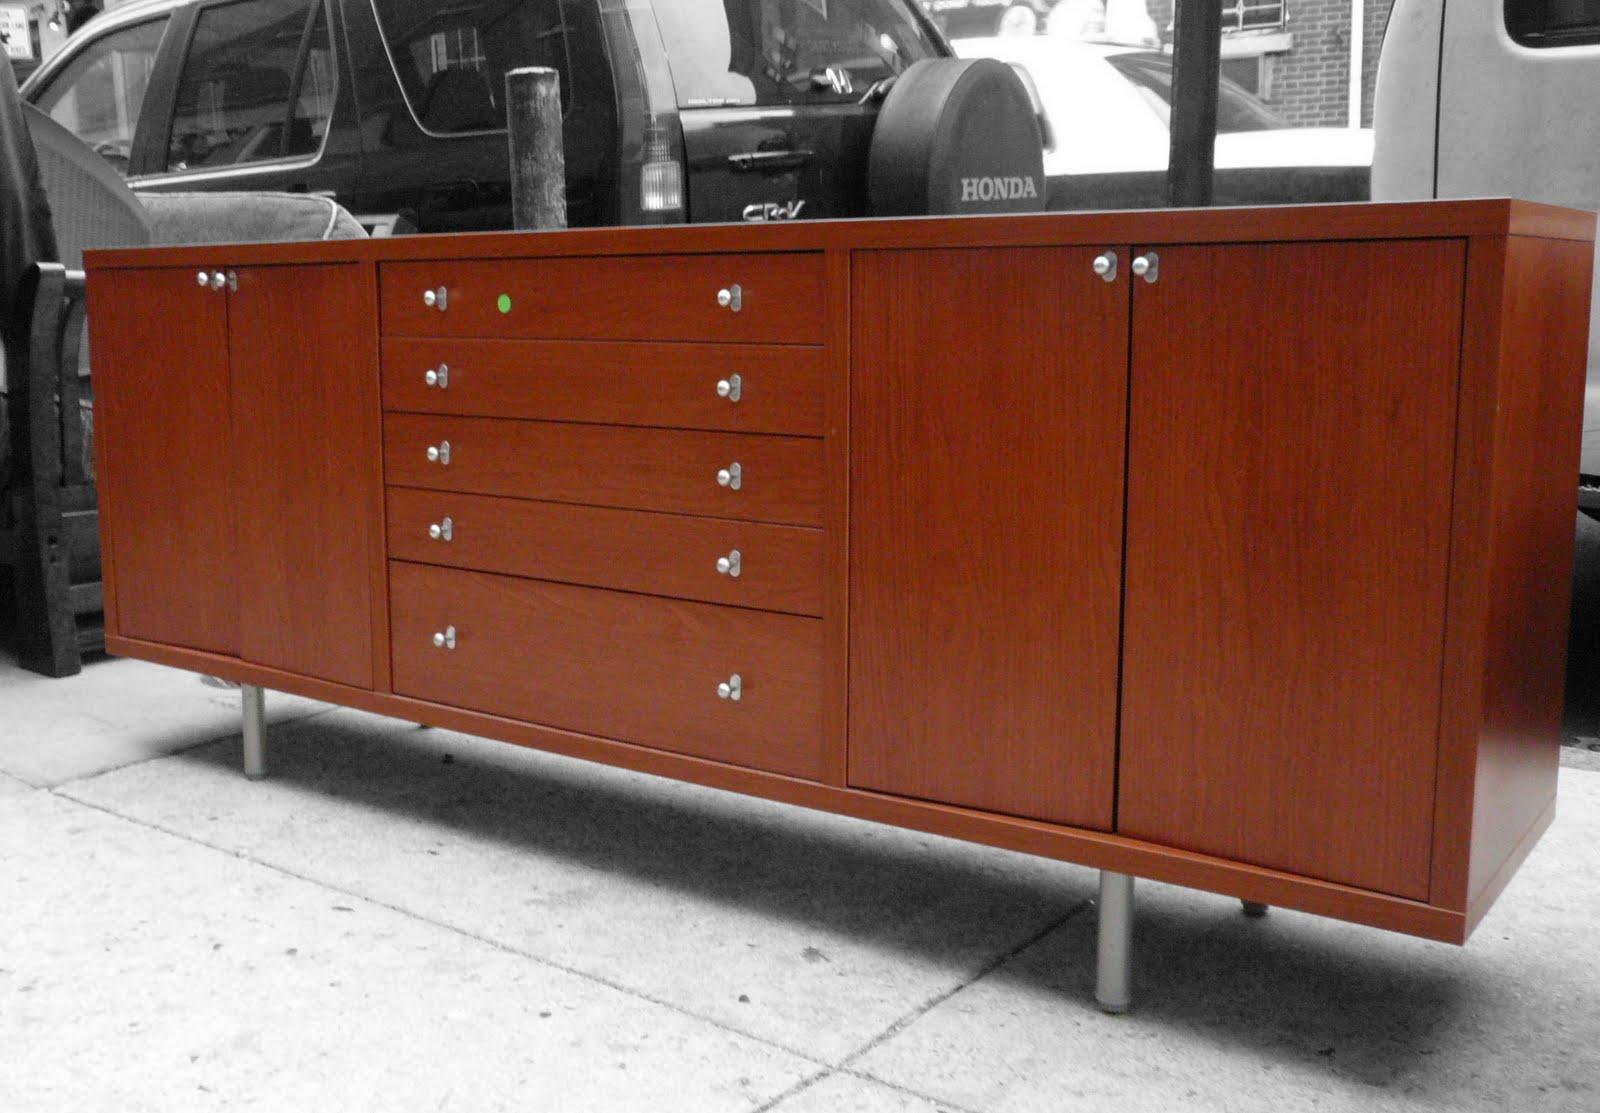 Ikea Credenza Tv Stand : Uhuru furniture collectibles versatile ikea cabinet sold